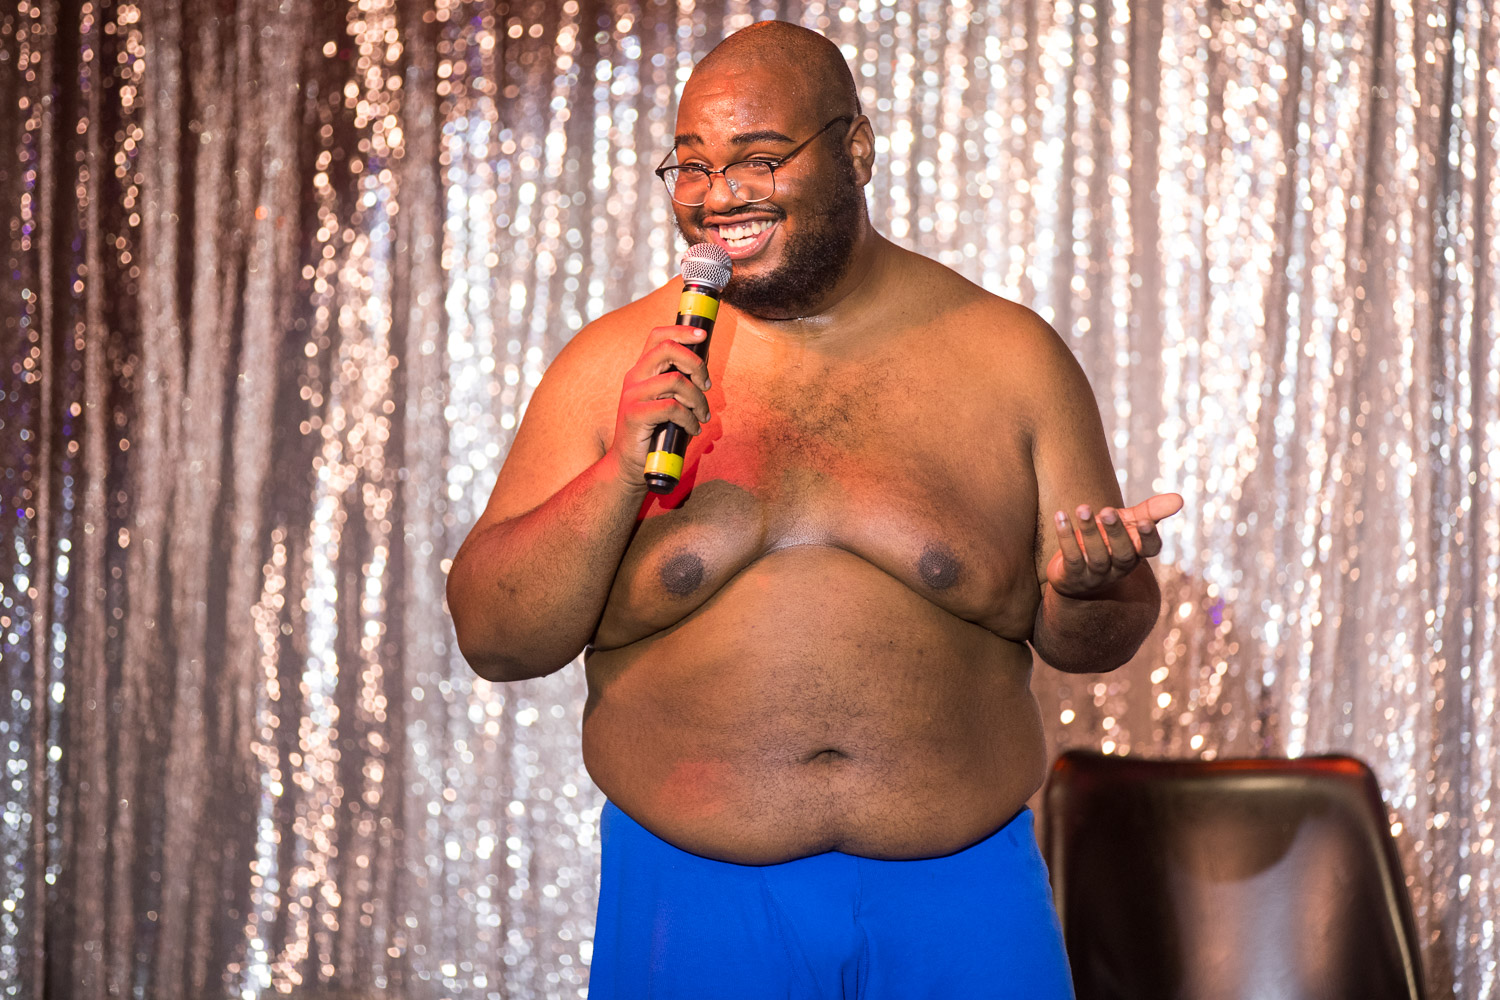 Comedian Dorian Debose during the Comedy Cabaret at Missie B's in Kansas City, MO on June 29, 2021